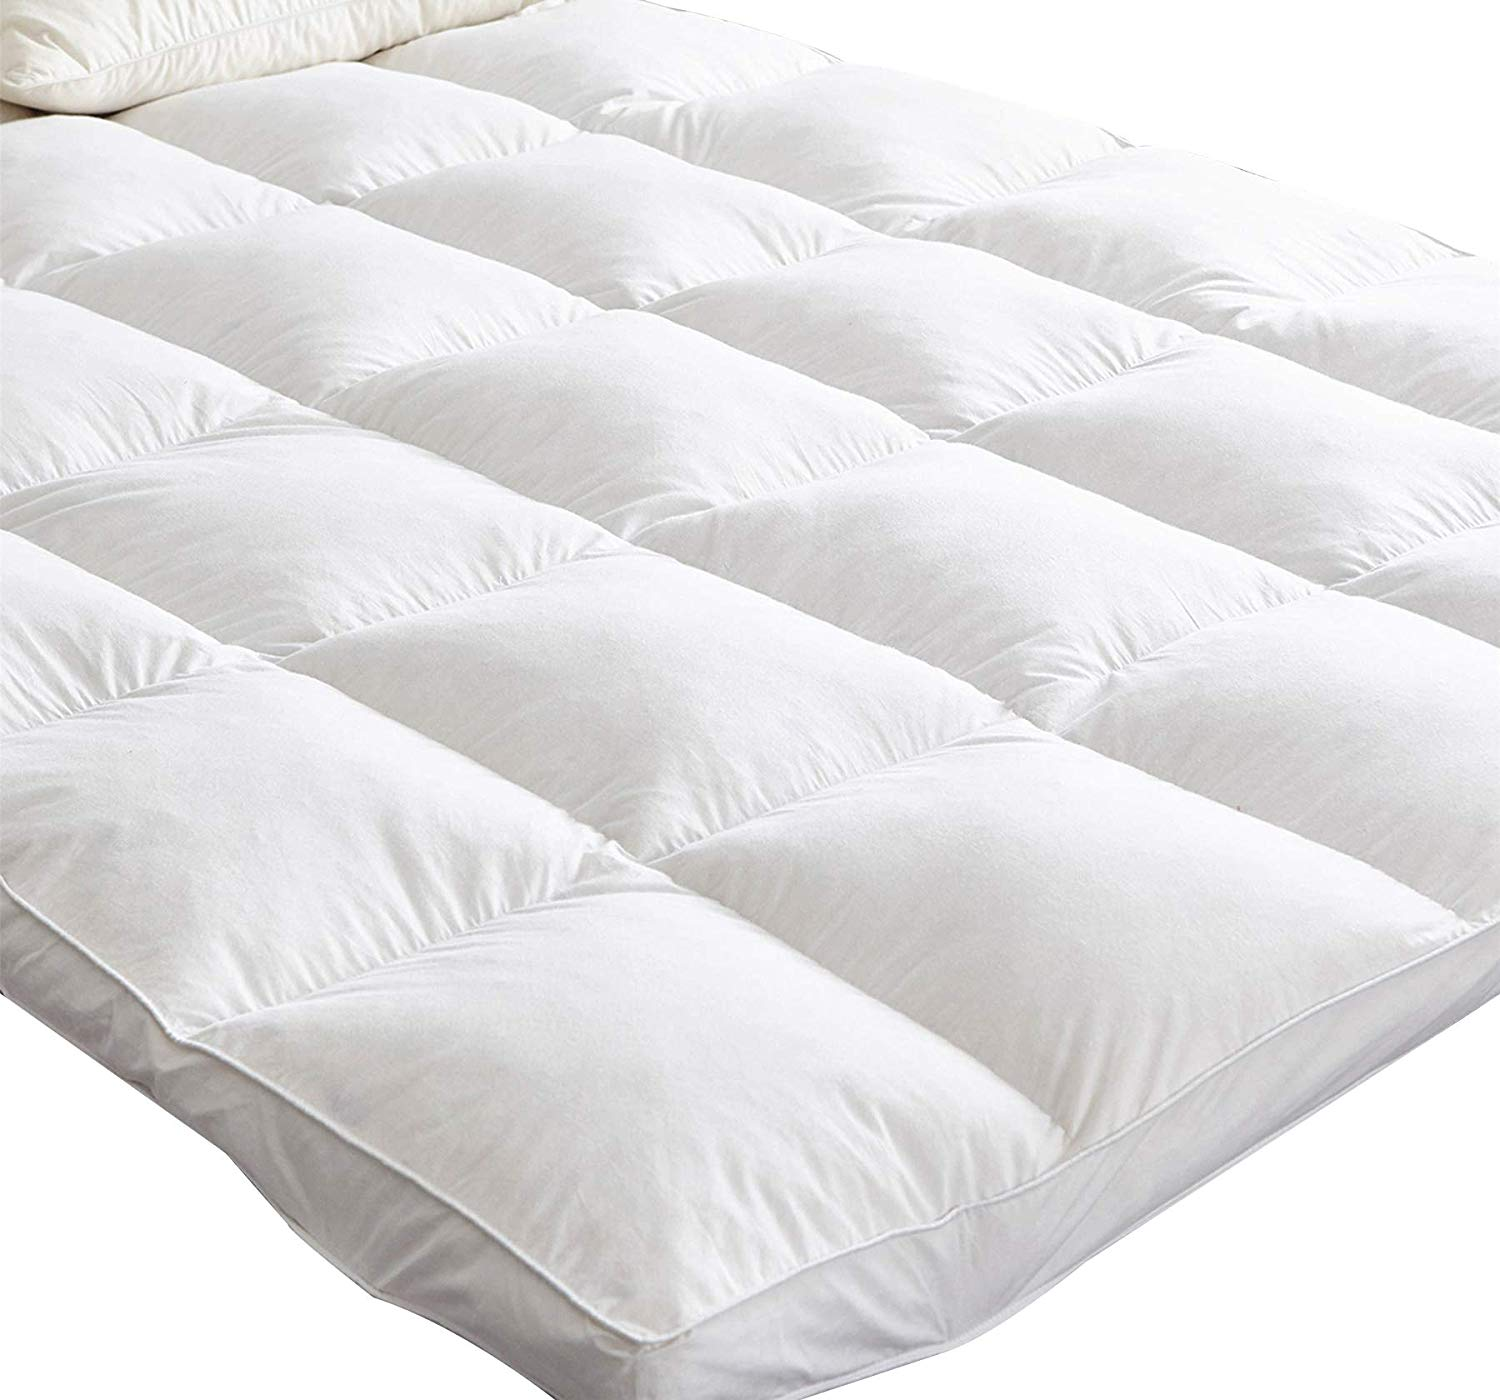 Mattress Topper King Size – 7cm Extra Thick Soft White Goose Feather and Down Bed Topper